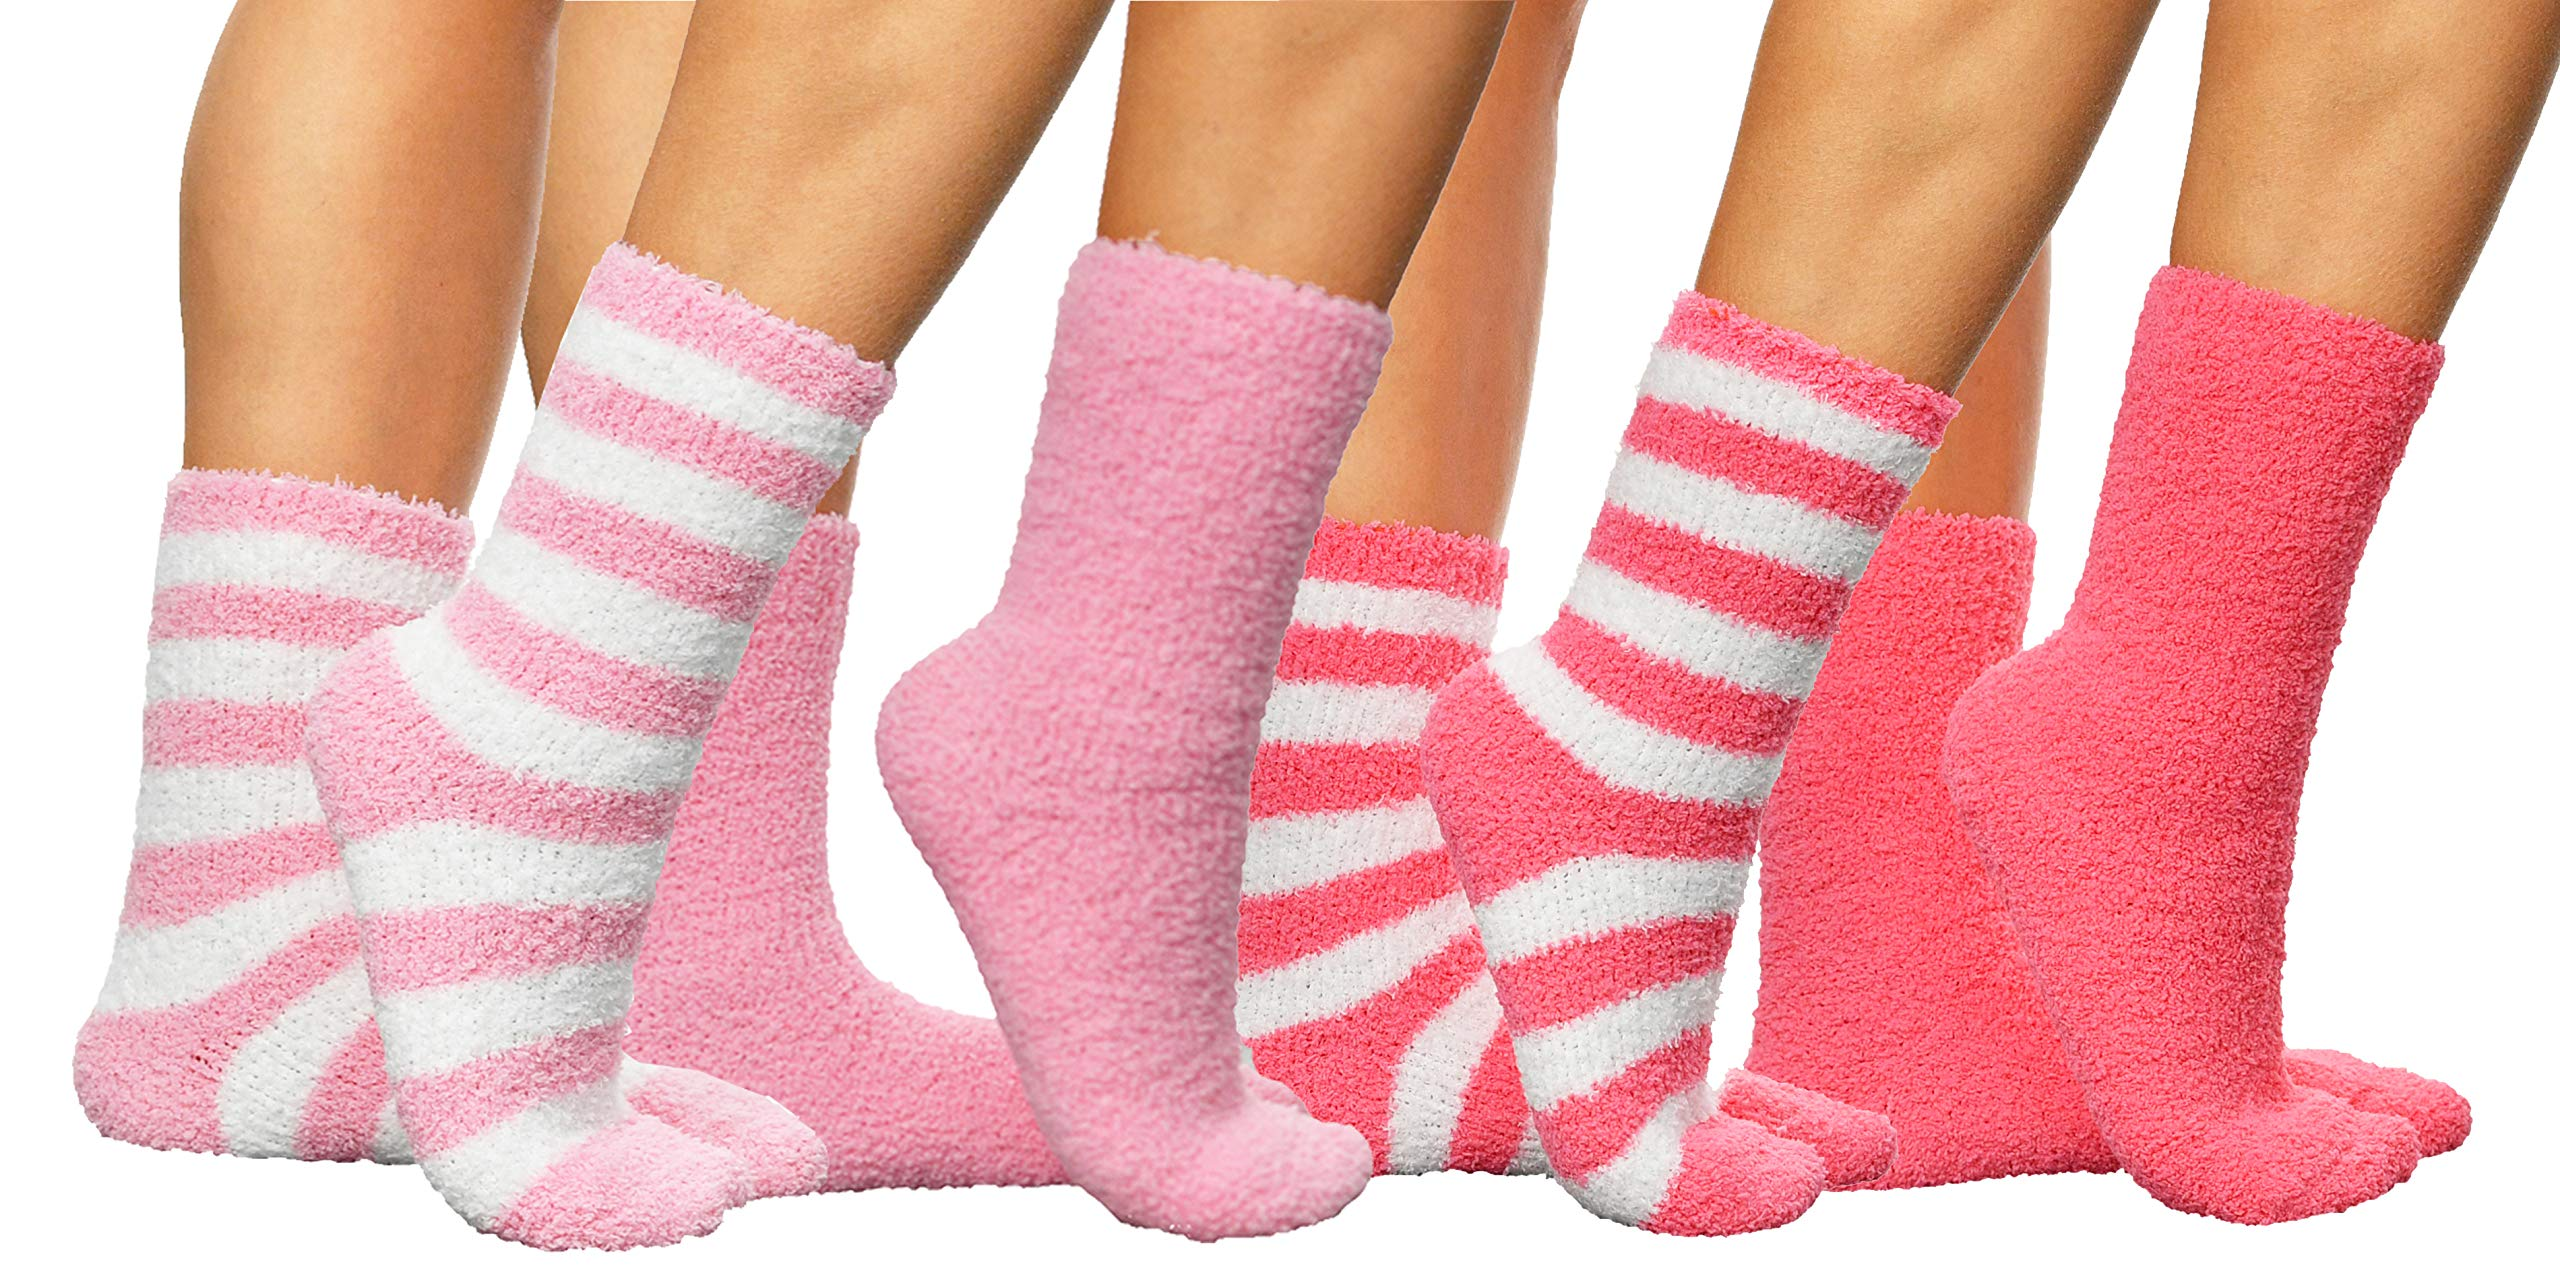 ARAD Premium Soft Warm Microfiber Fuzzy Socks-Multi Color- 4 Pairs- Striped Baby Pink, Solid Baby Pink, Striped Pink and Solid Pink